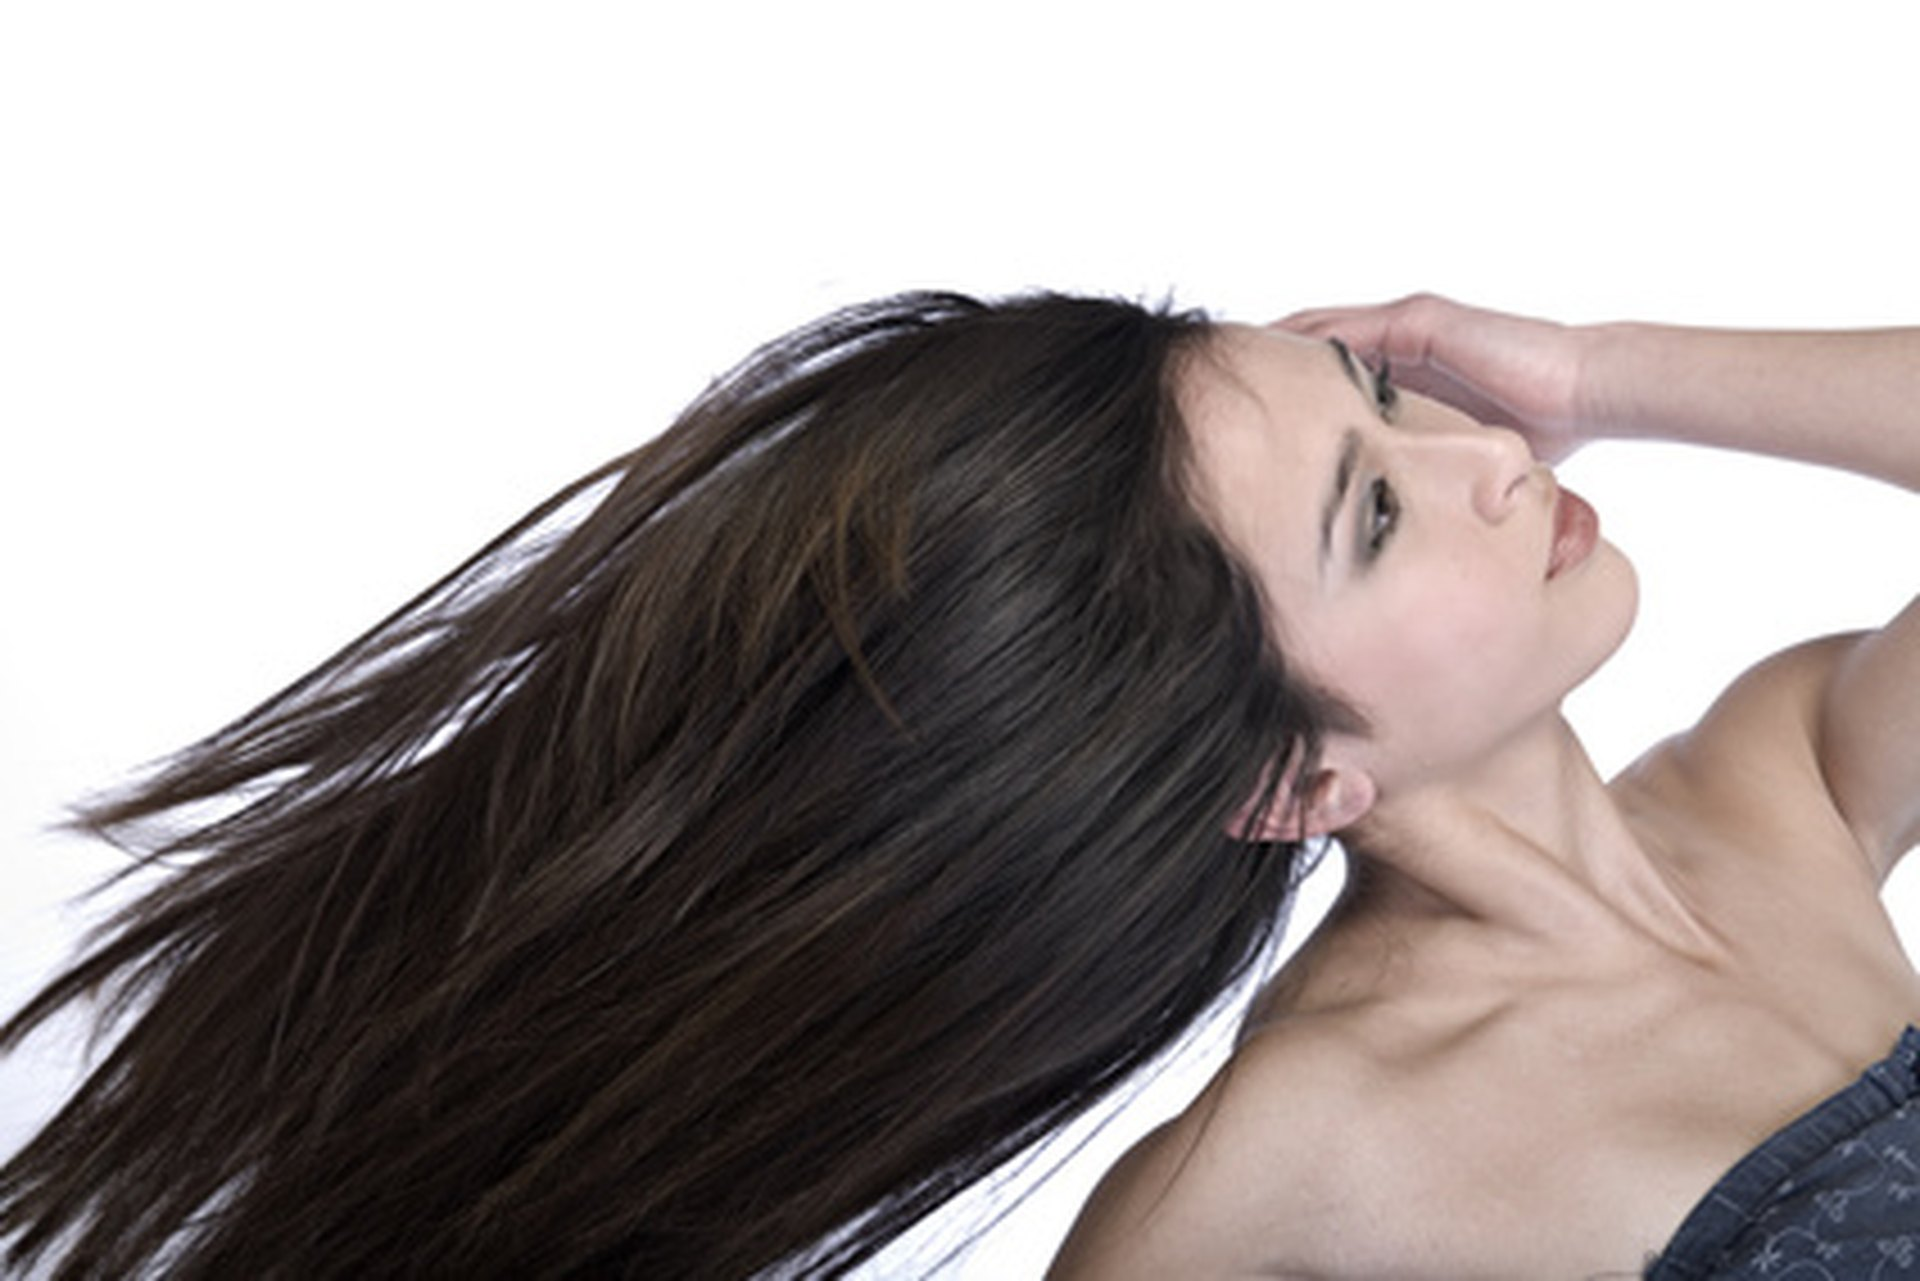 How To Care For A Sewn In Hair Extension Livestrong